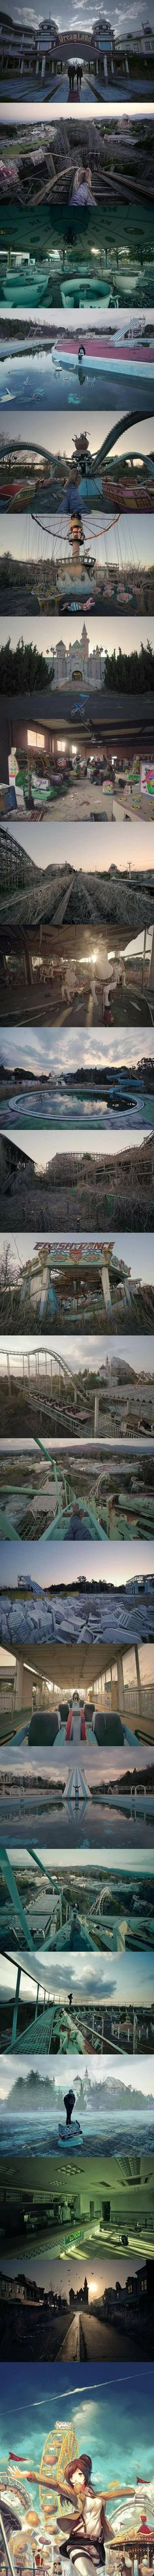 Welcome to DreamLand. An Abandoned theme park in Nara, Japan (By Victor Habchy)